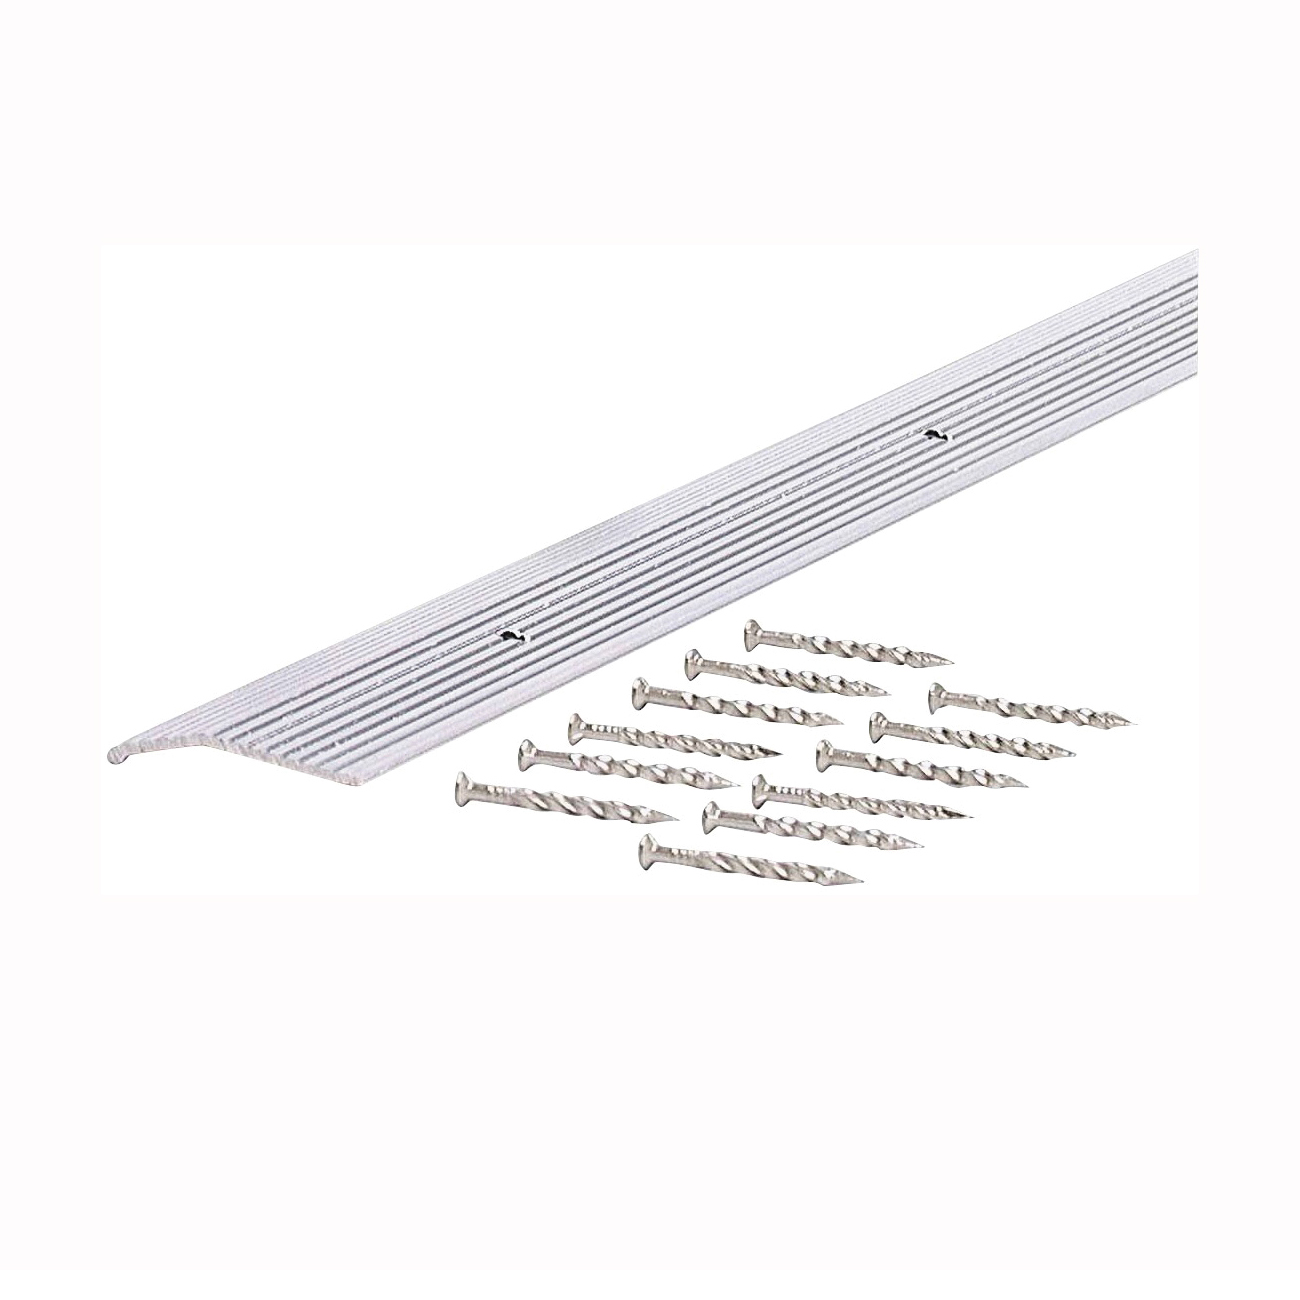 Picture of M-D 78071 Carpet Trim, 36 in L, 1.38 in W, Fluted Surface, Aluminum, Silver